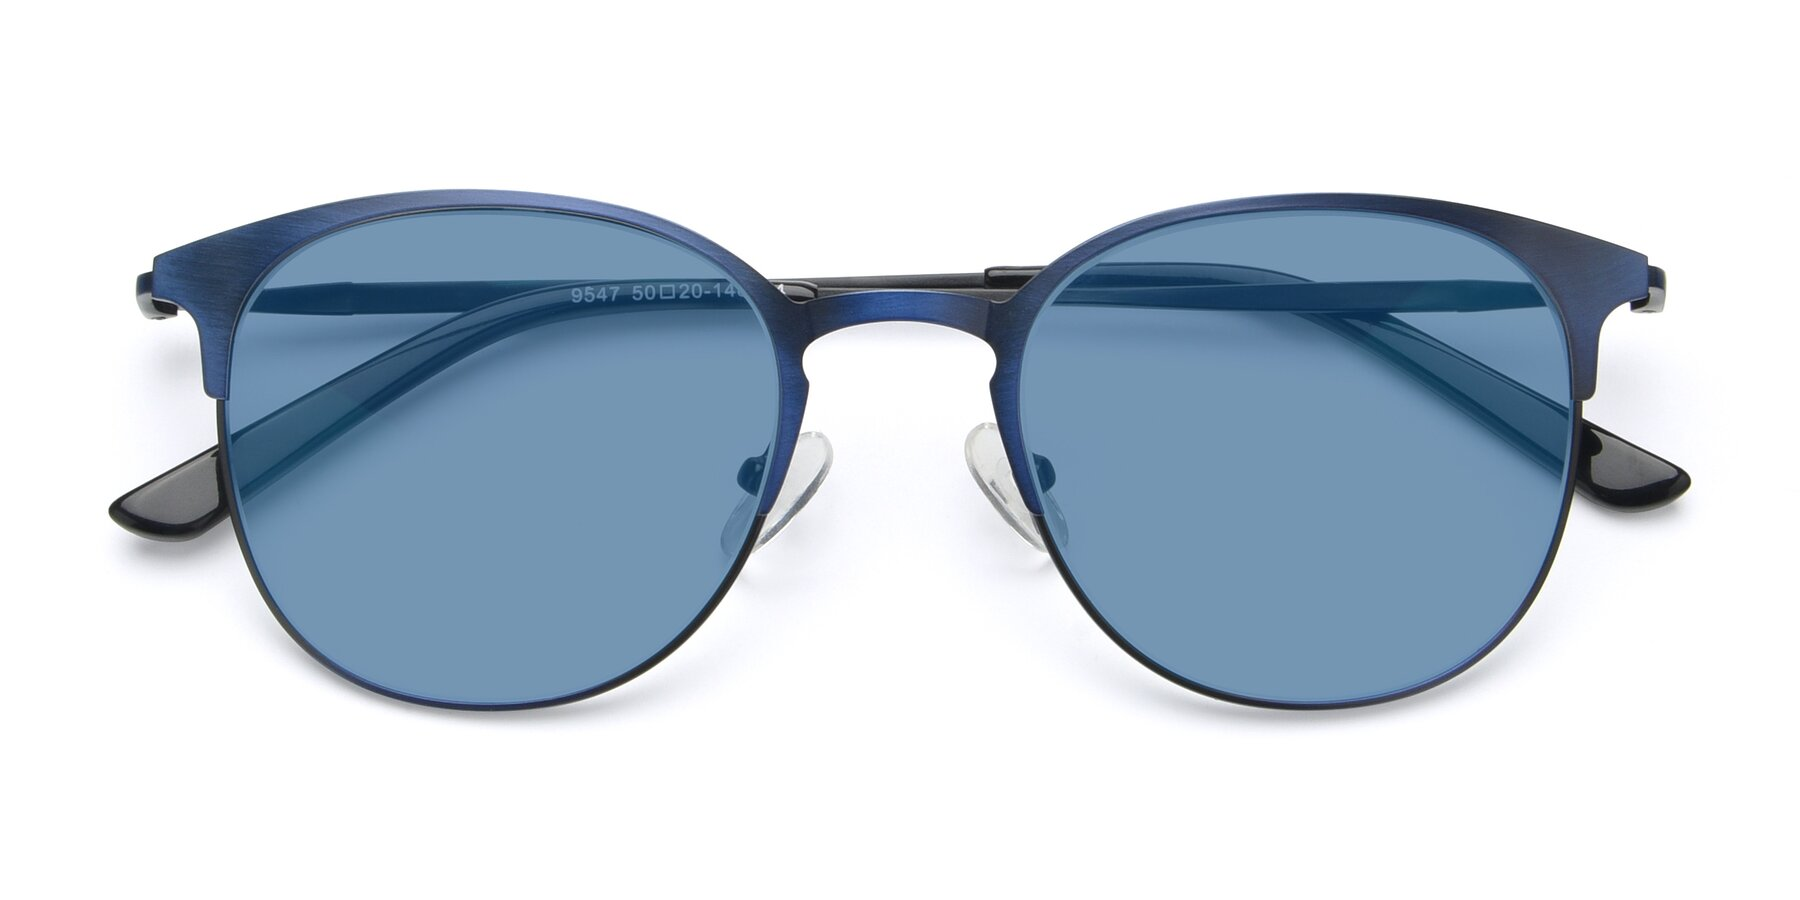 Folded Front of 9547 in Antique Blue with Medium Blue Tinted Lenses